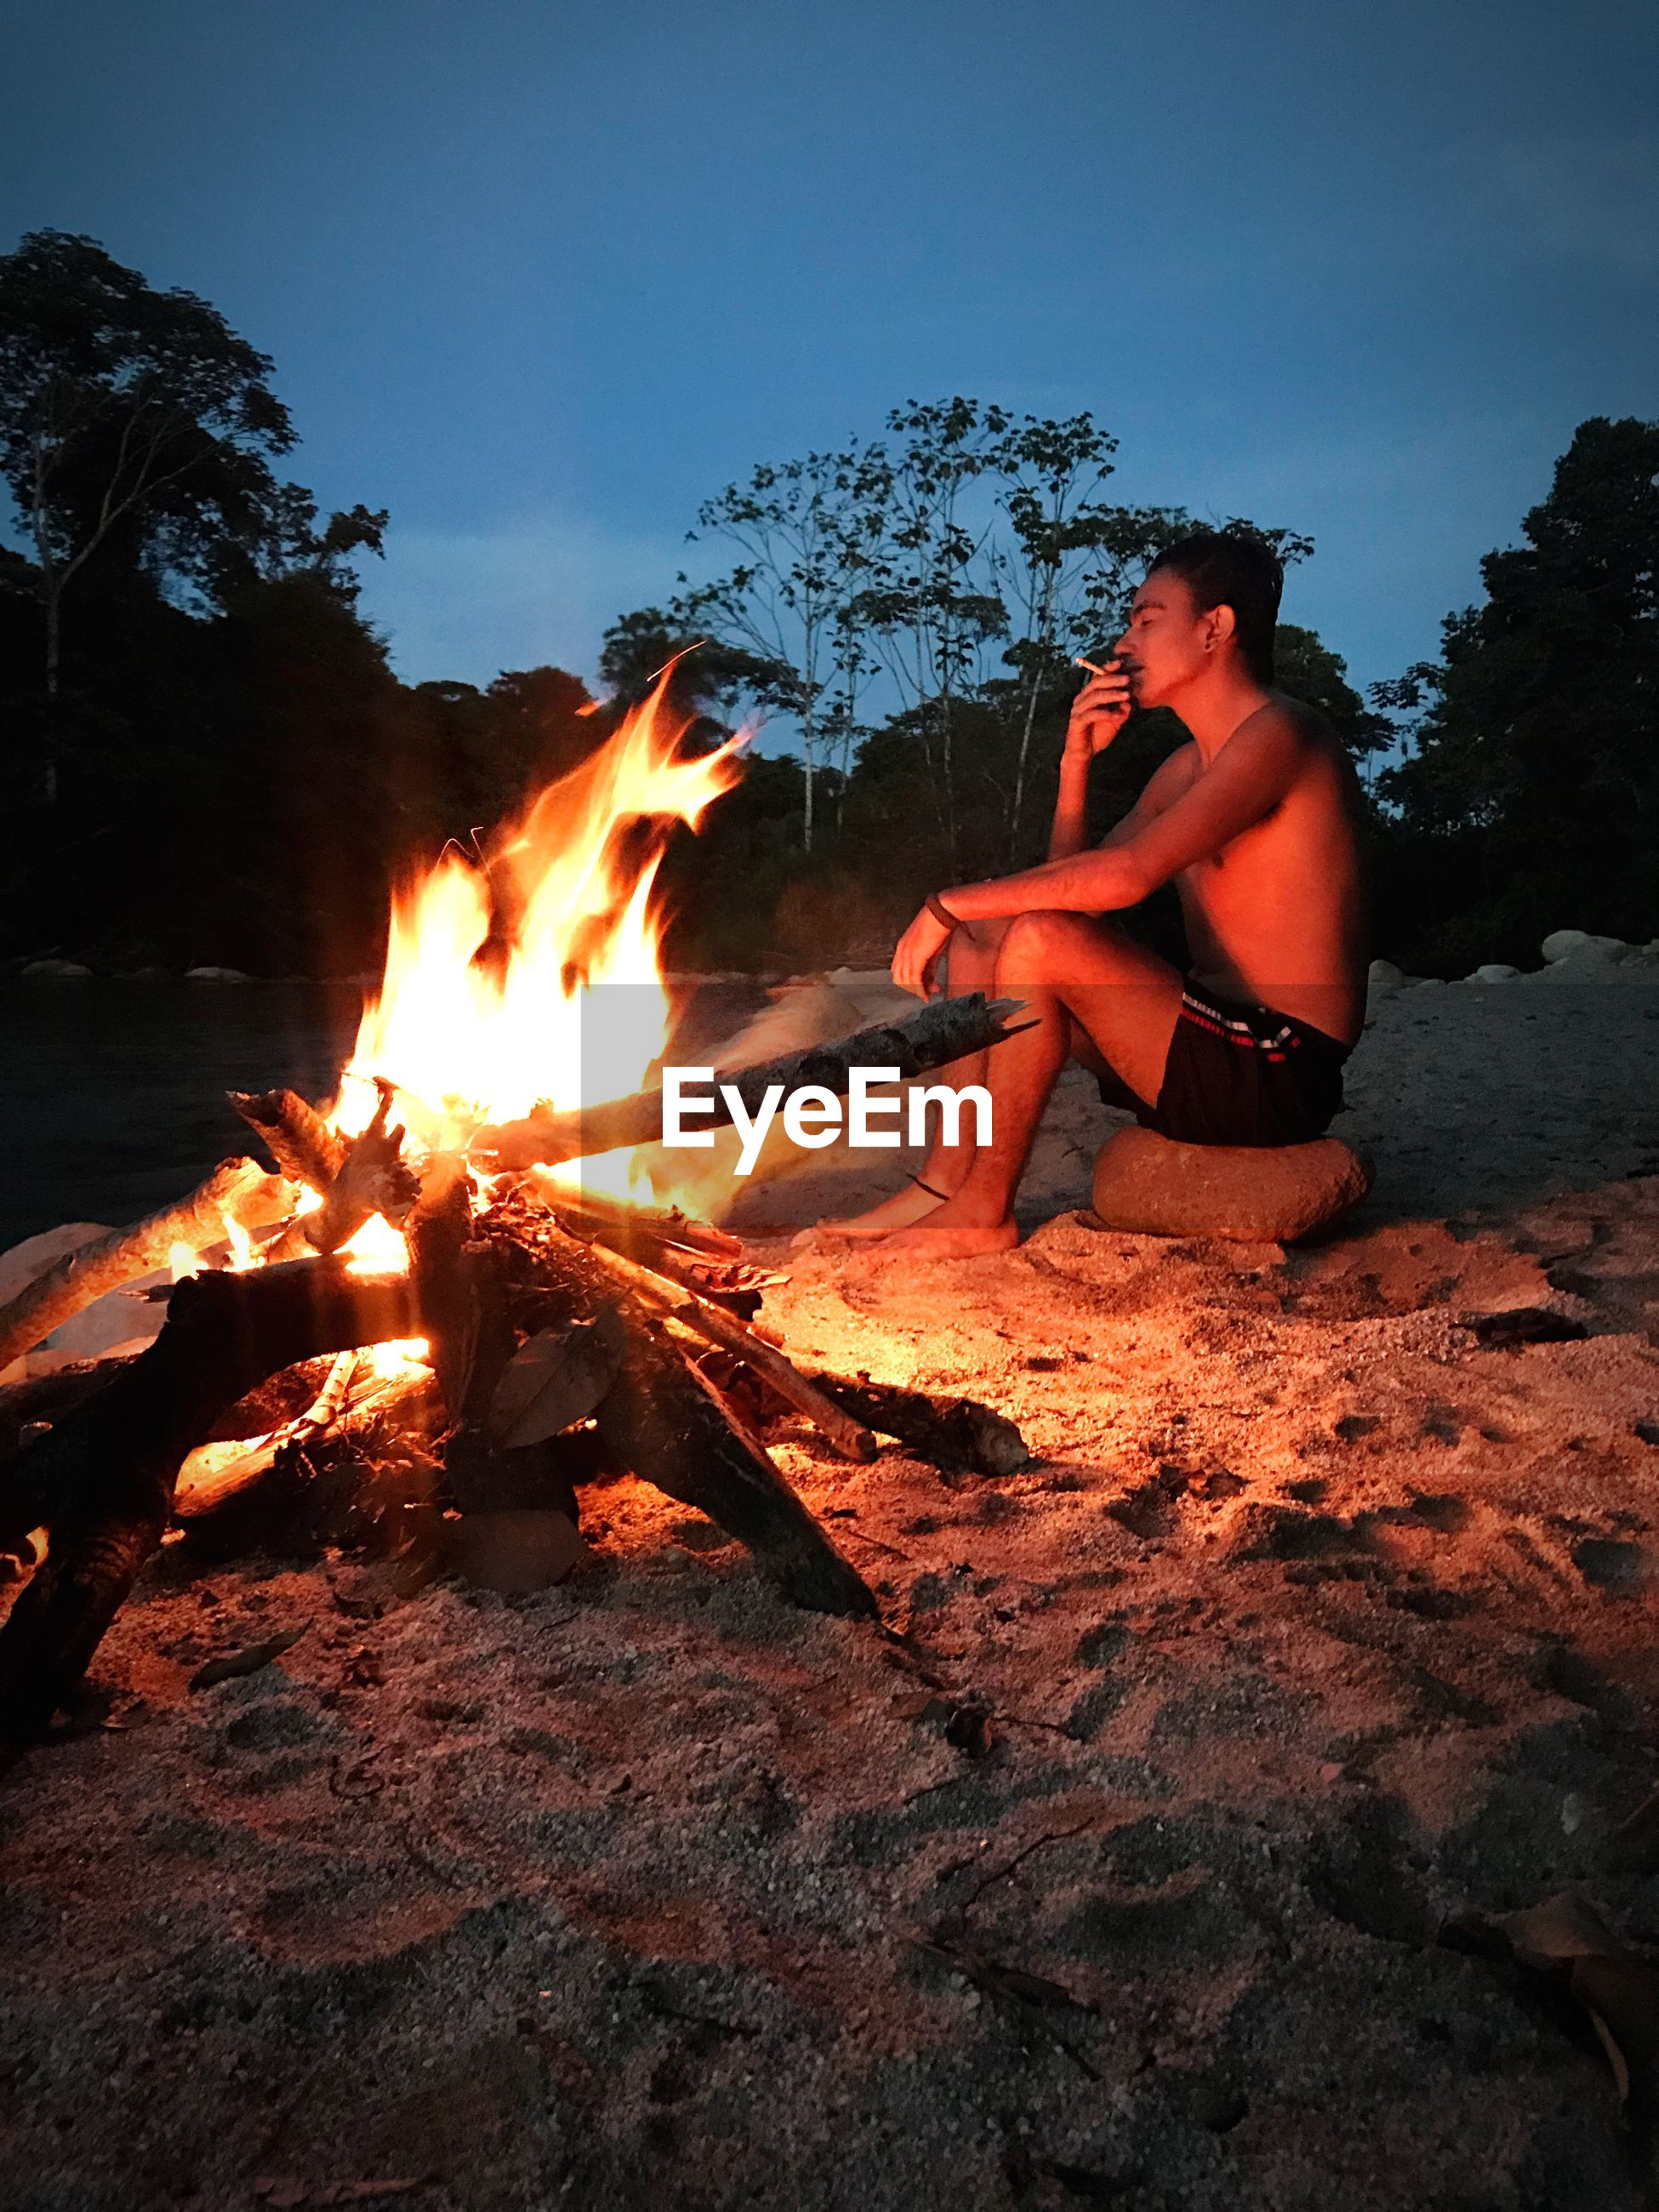 Side view of shirtless man smoking while sitting by campfire